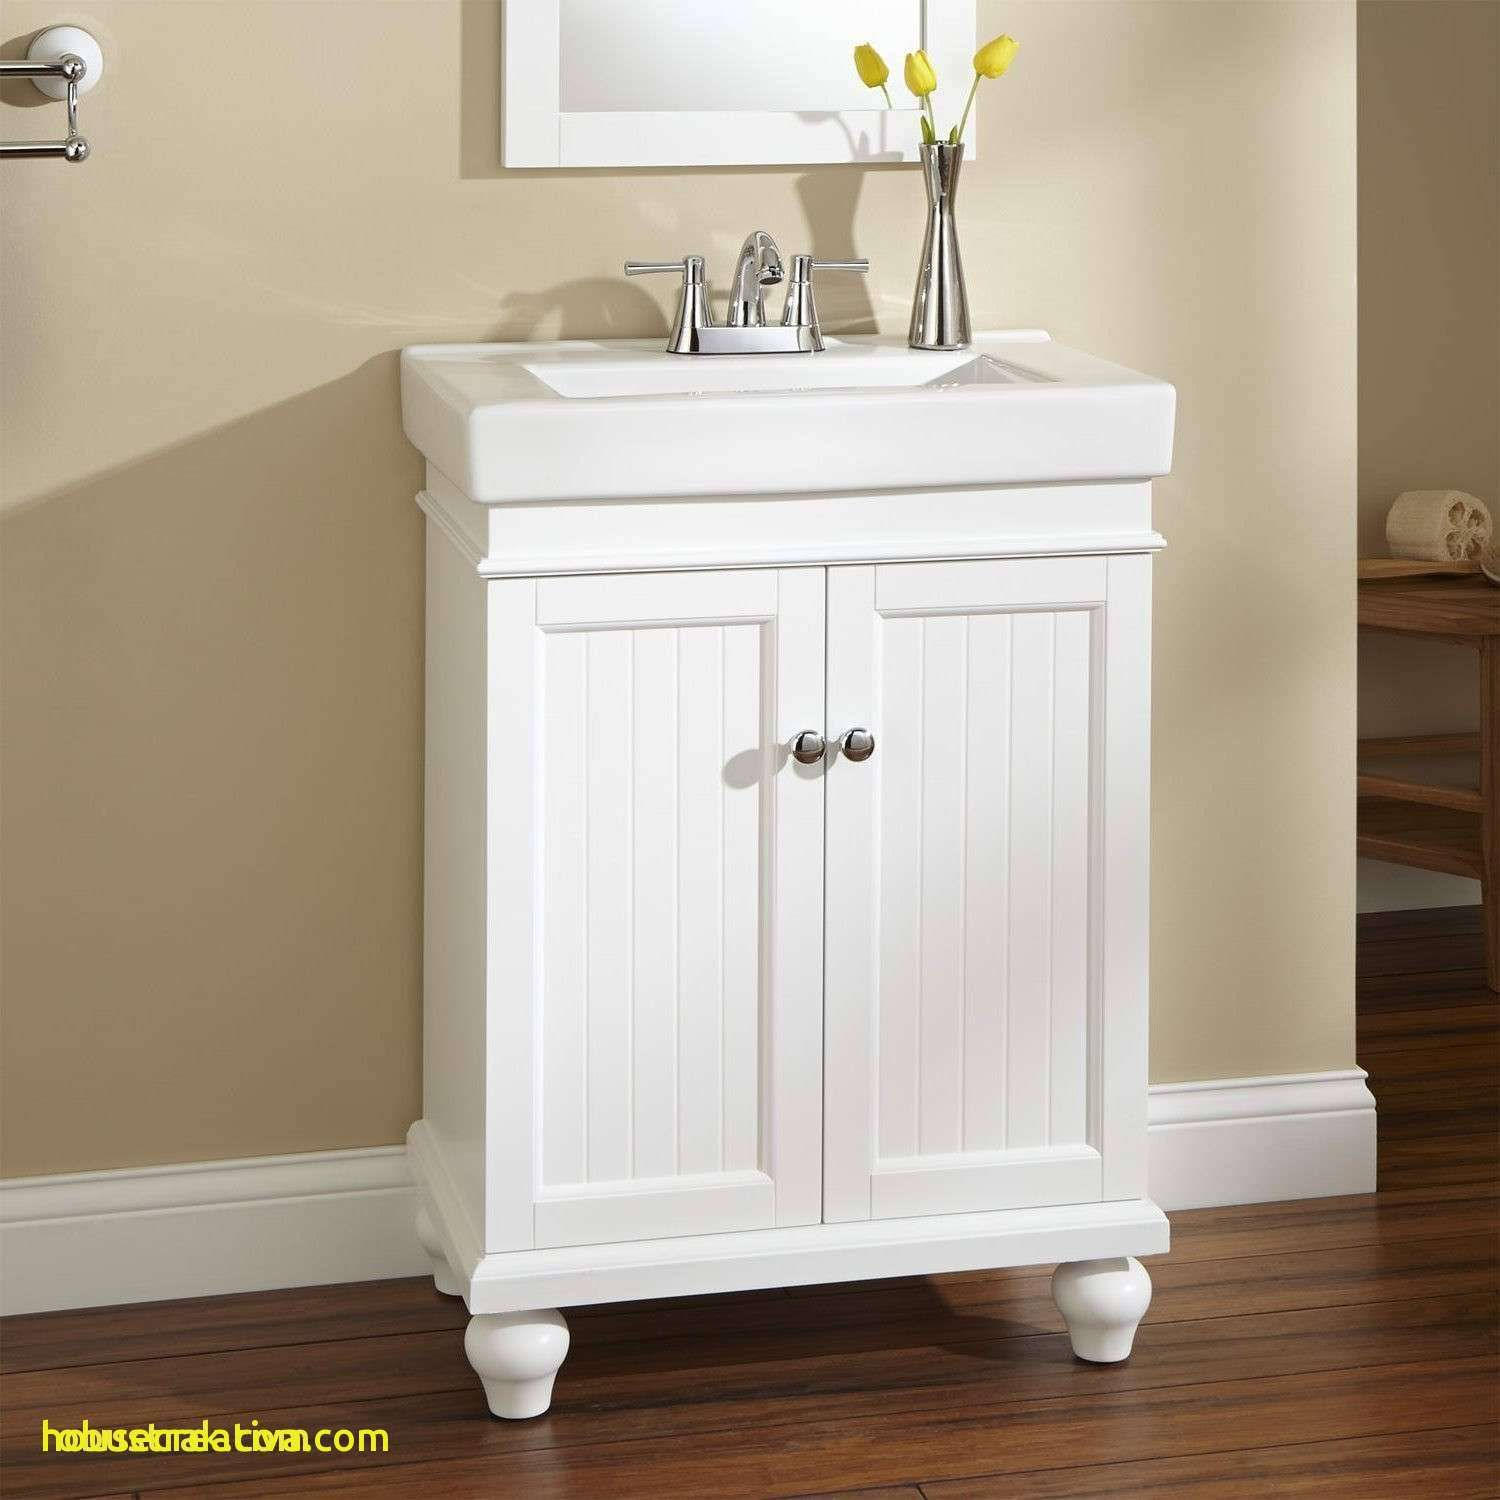 Elegant Bathroom Vanities 18 Inches Deep Homedecoration Homedecorations Homedecor 24 Inch Bathroom Vanity Home Depot Bathroom Vanity White Vanity Bathroom